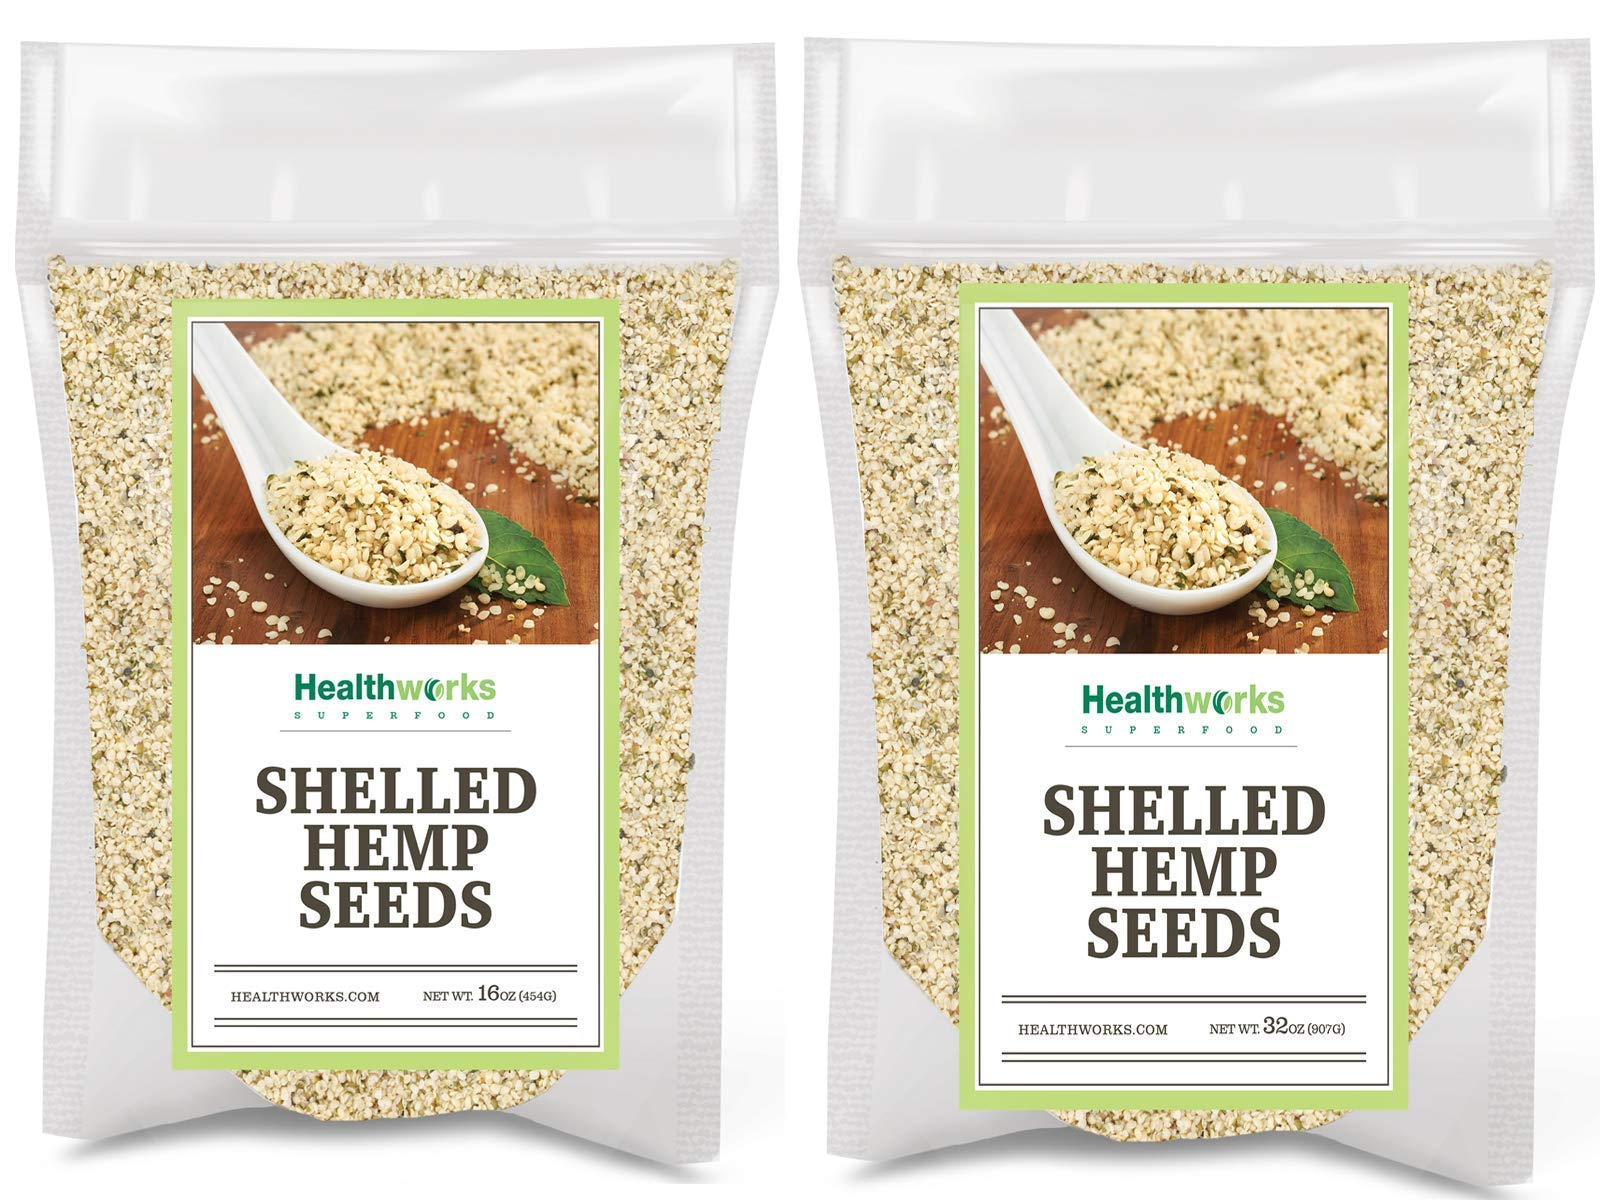 Healthworks Shelled Hemp Seeds Canadian (48 Ounces / 3 Pound) | Premium & All-Natural | Contains Omega 3 & 6, Fiber and Protein | Great with Shakes, Smoothies & Oatmeal